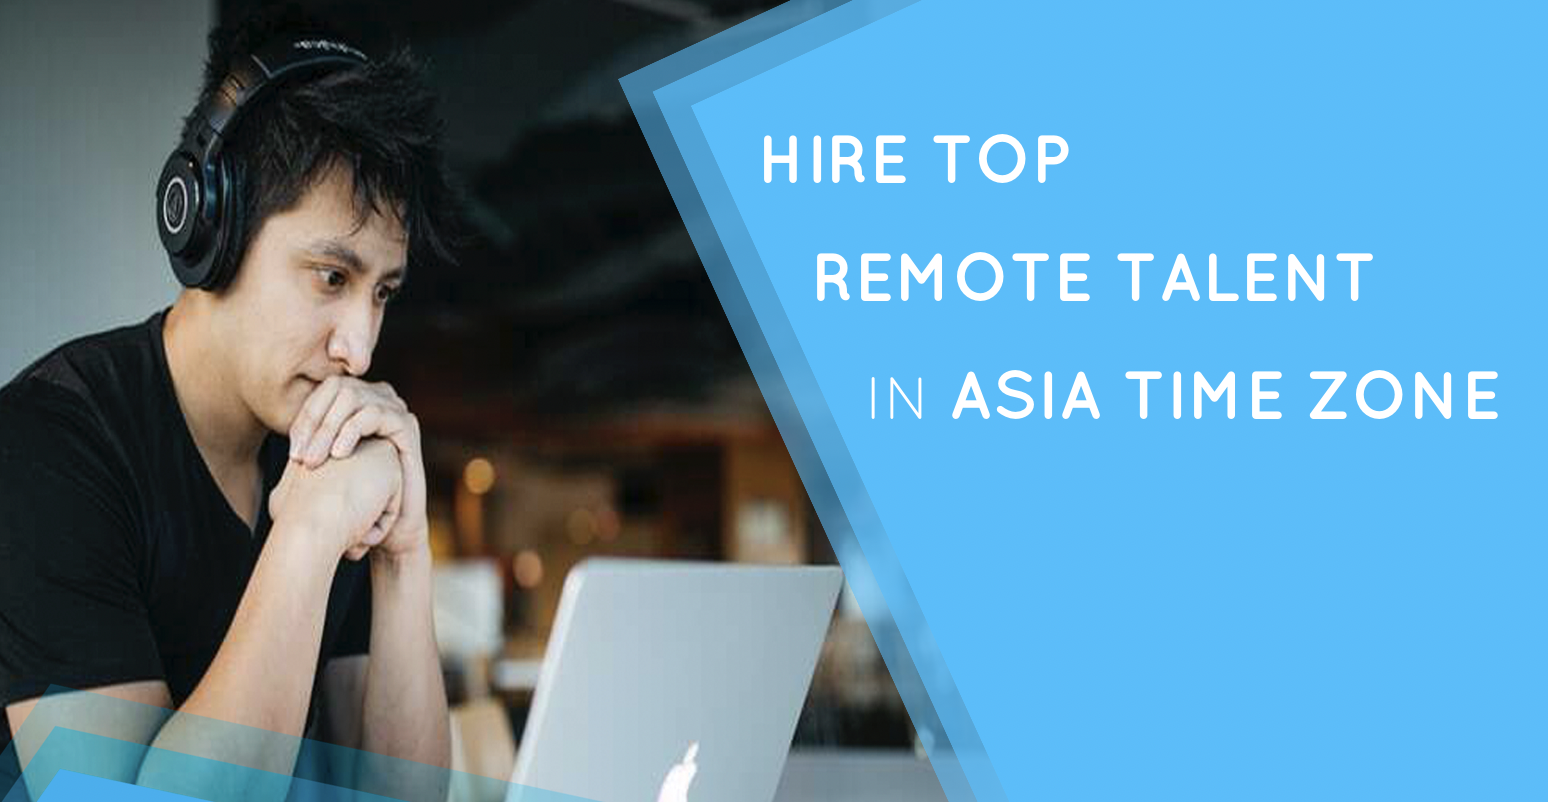 Hiring Top Remote Talent in Southeast Asia | Blog from New Day Jobs